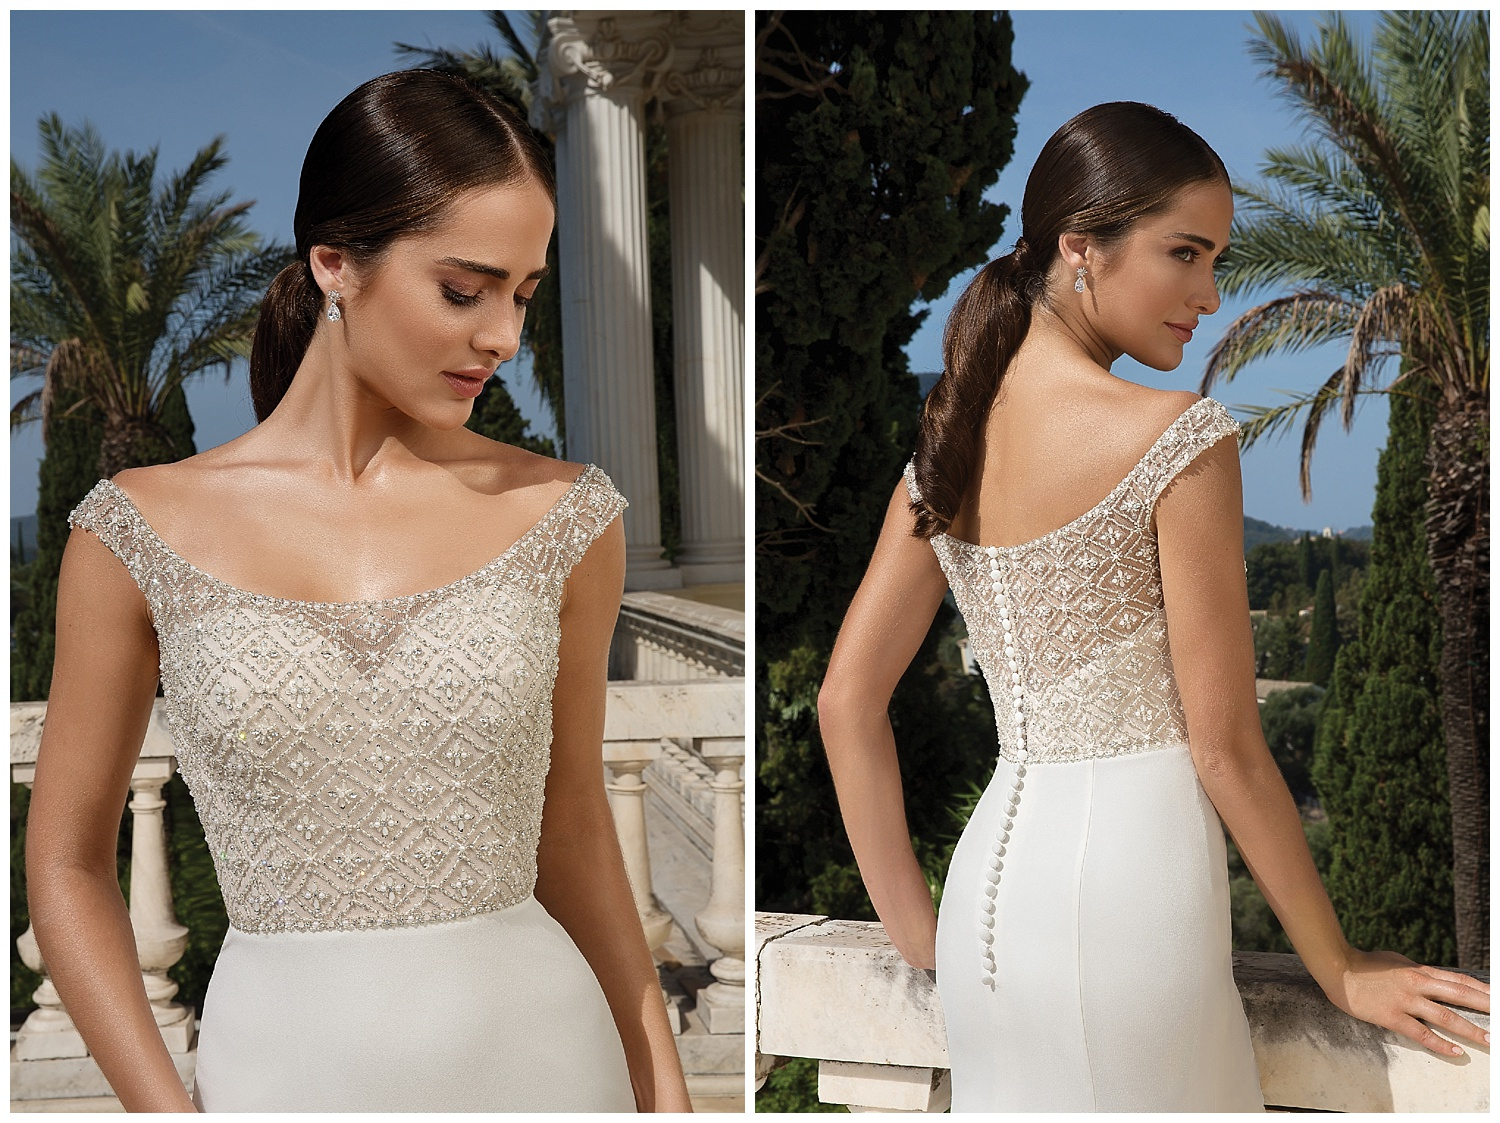 https://www.dropbox.com/preview/KRISTINE%20BLOG%20FILES%20AND%20IMAGES/Justin%20Alexander%20fall%202019%20bridal%20collection%20-stomped/justin-alexander-88083-fitted-wedding-dress-epiphany-boutique-carmel-california.jpg